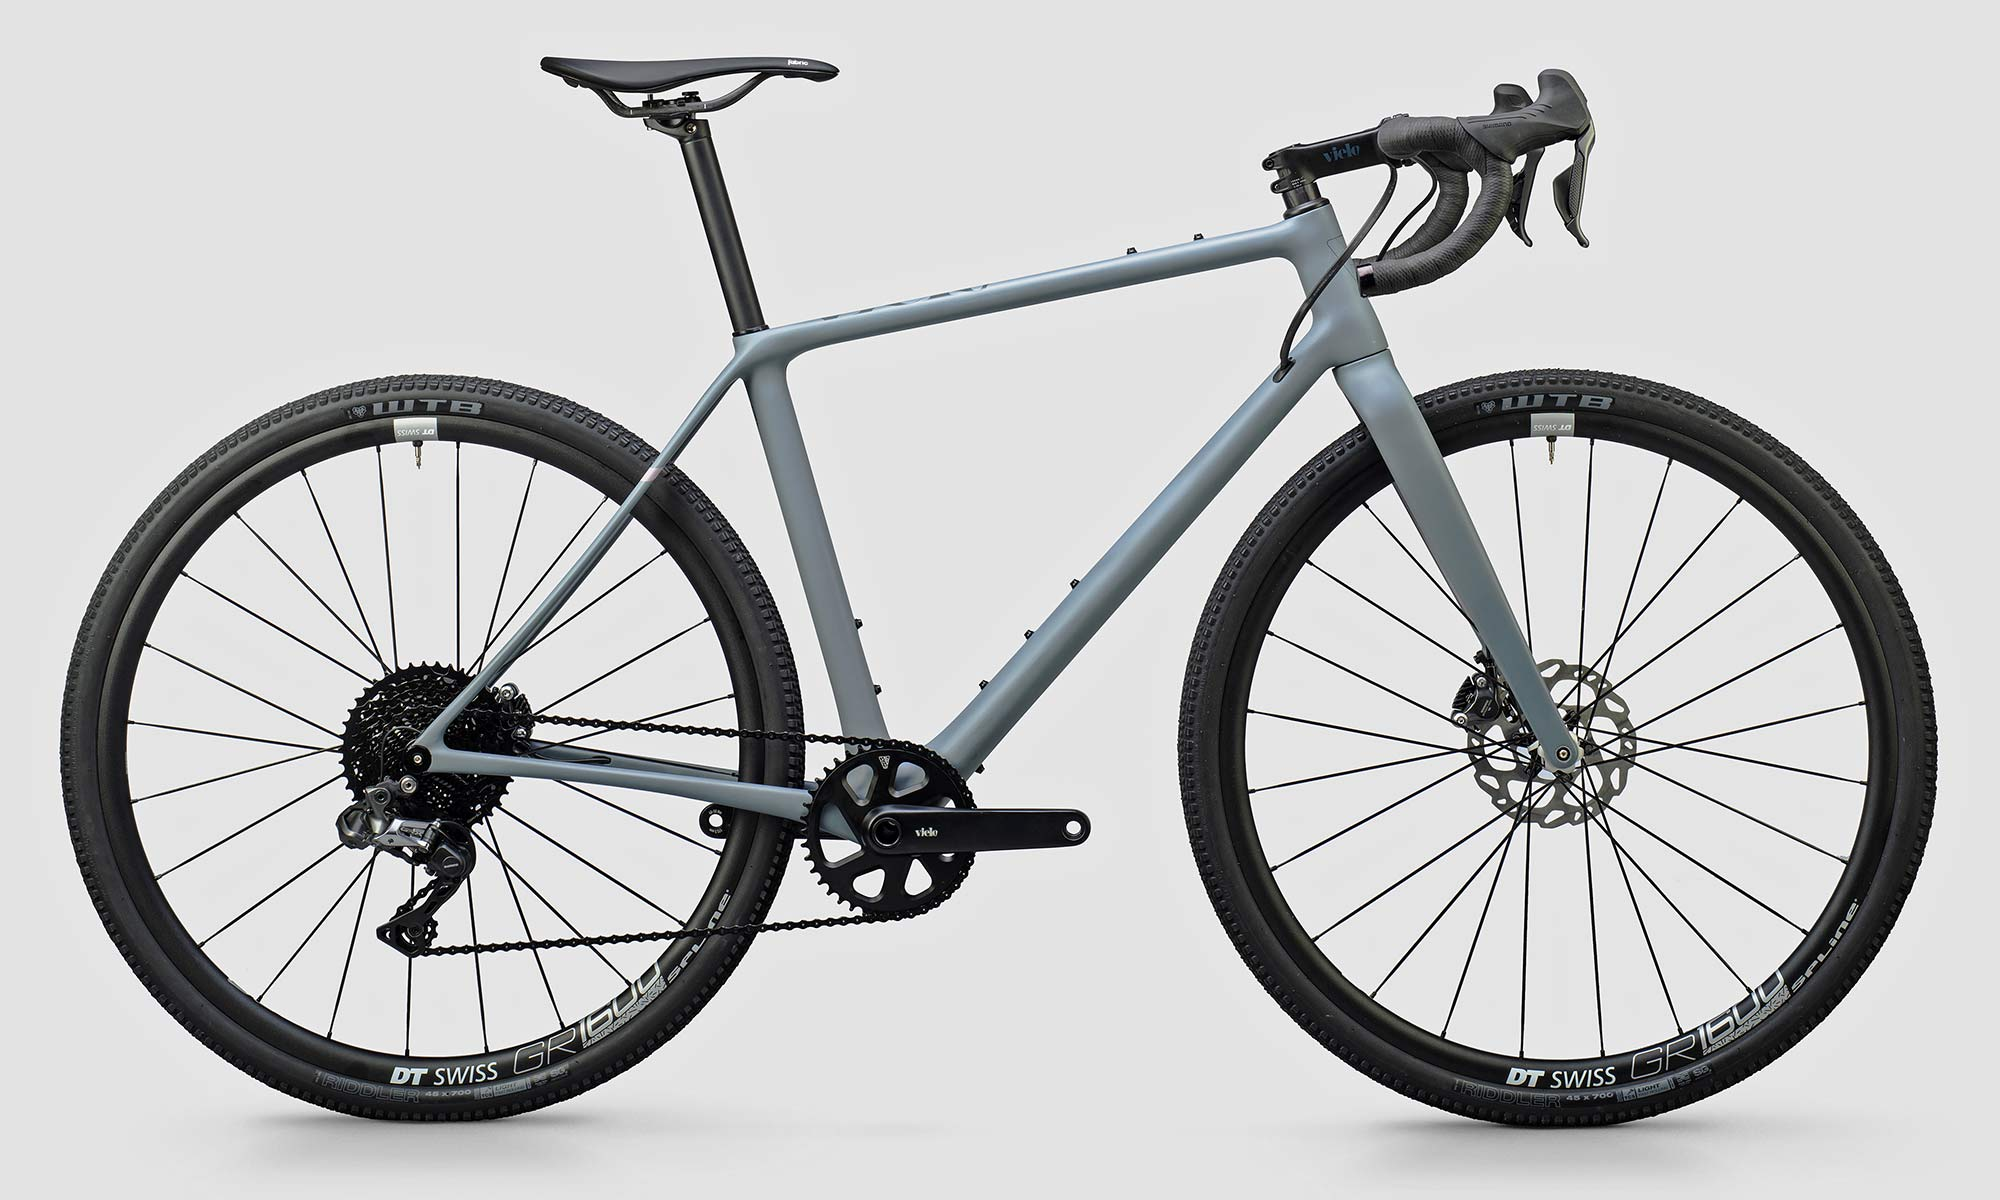 Vielo V+1 gravel bike, updated gen2 lightweight carbon fast gravel race bikes, Alto GRX Di2